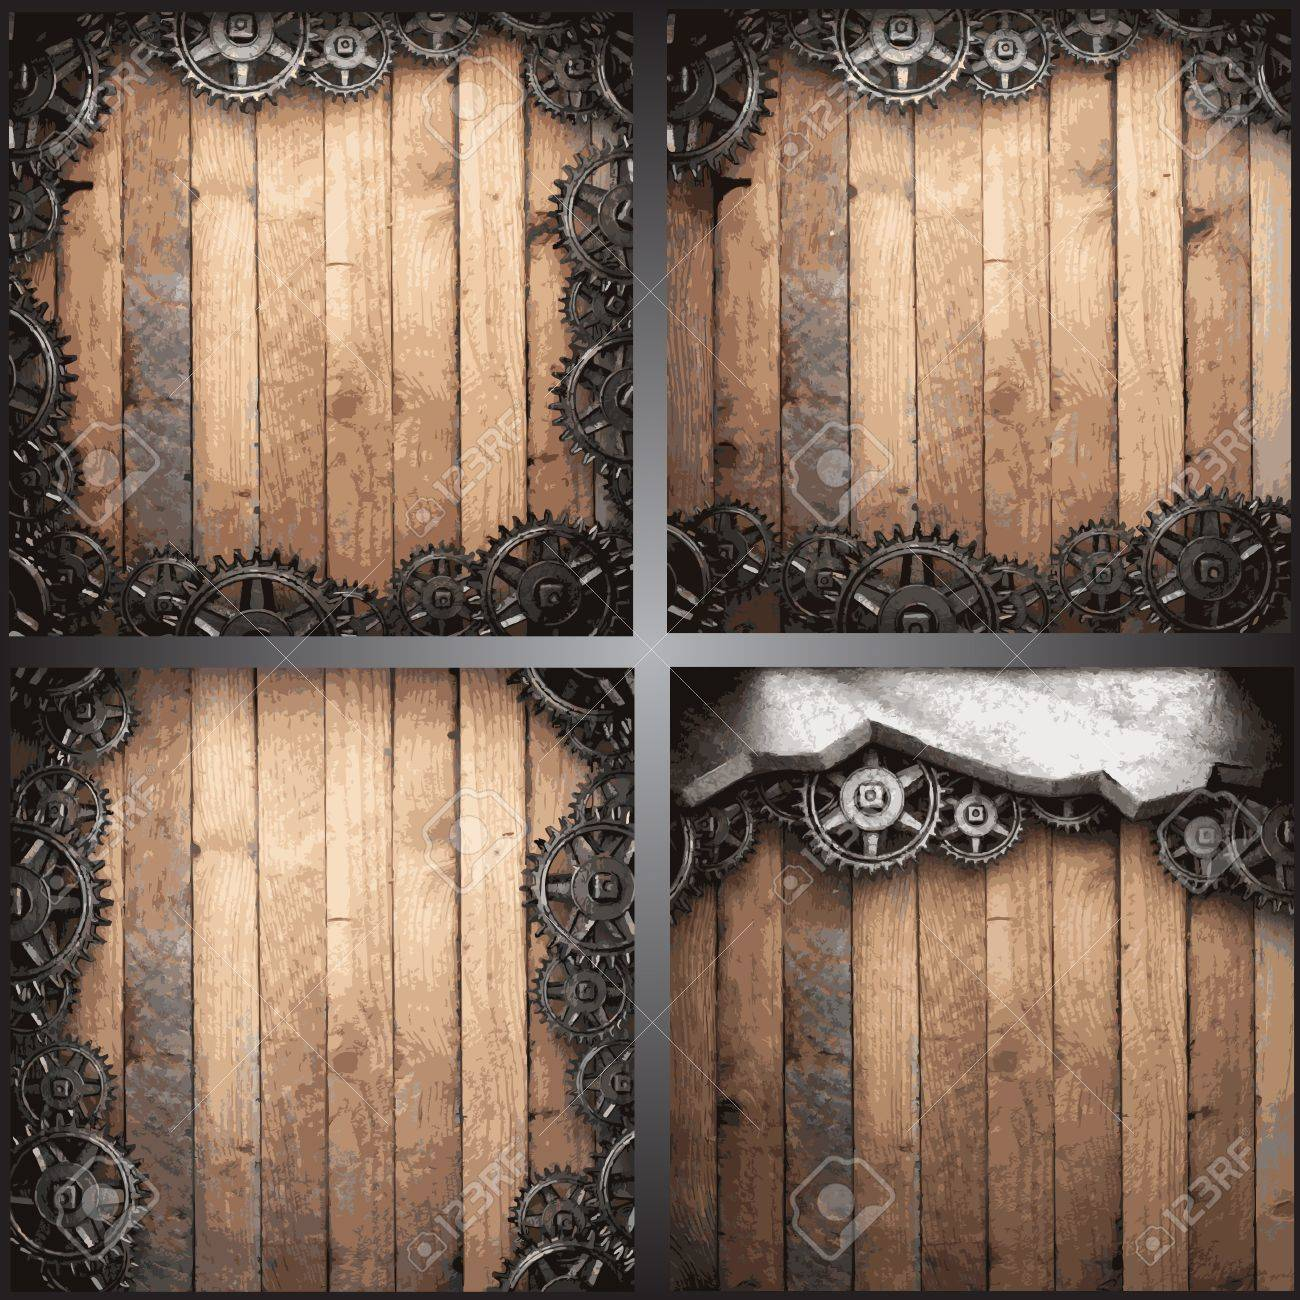 gear wheels on wooden background Stock Vector - 19258686